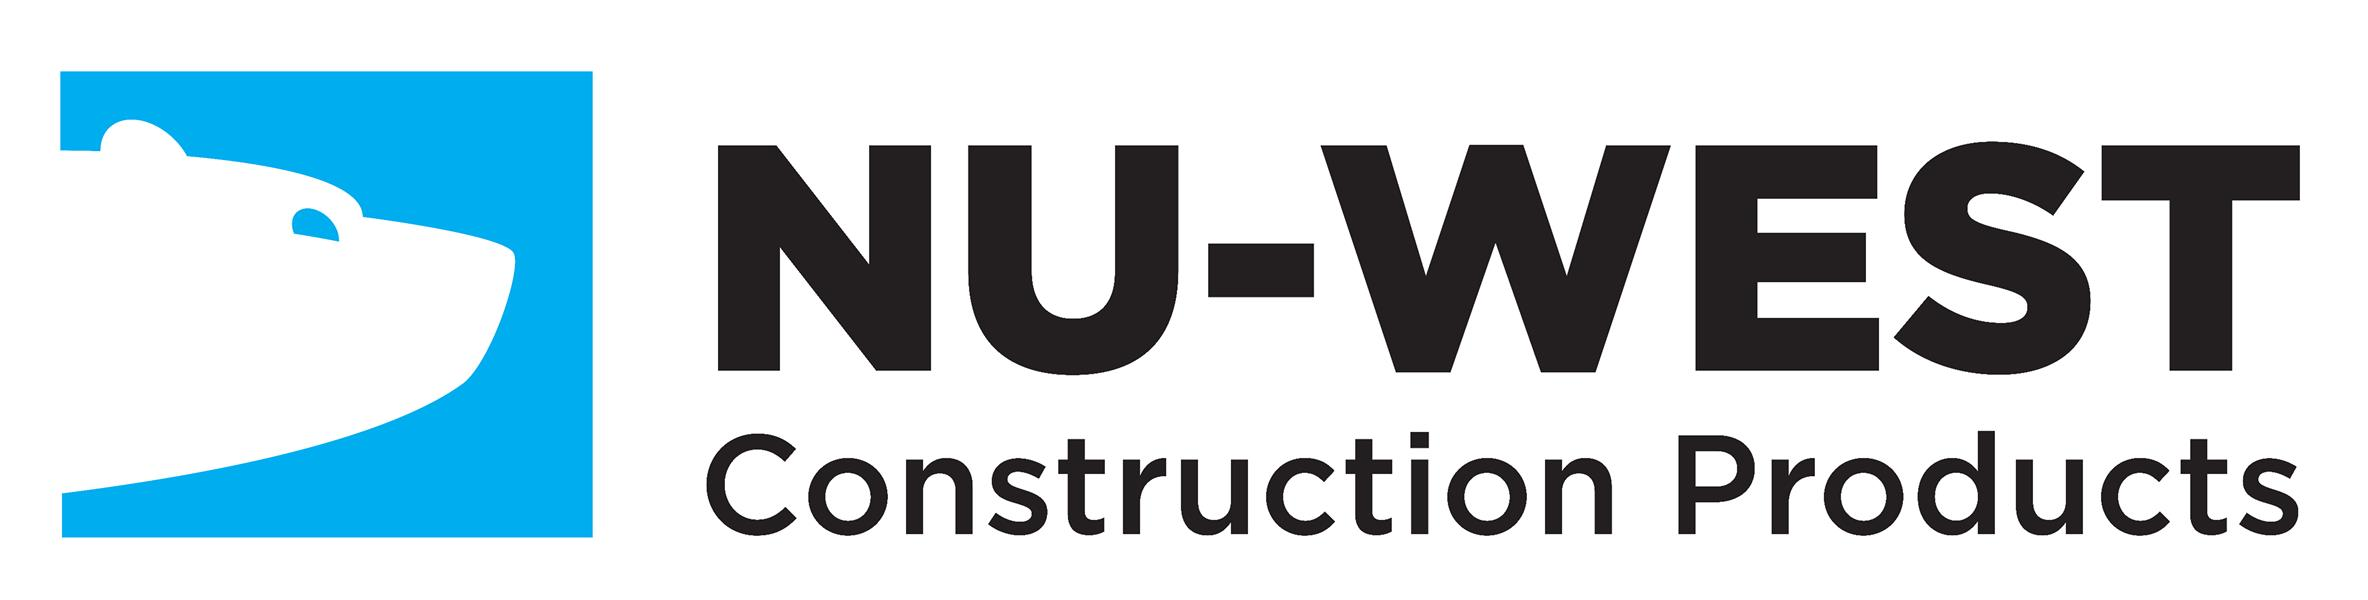 Nu-West Construction Products